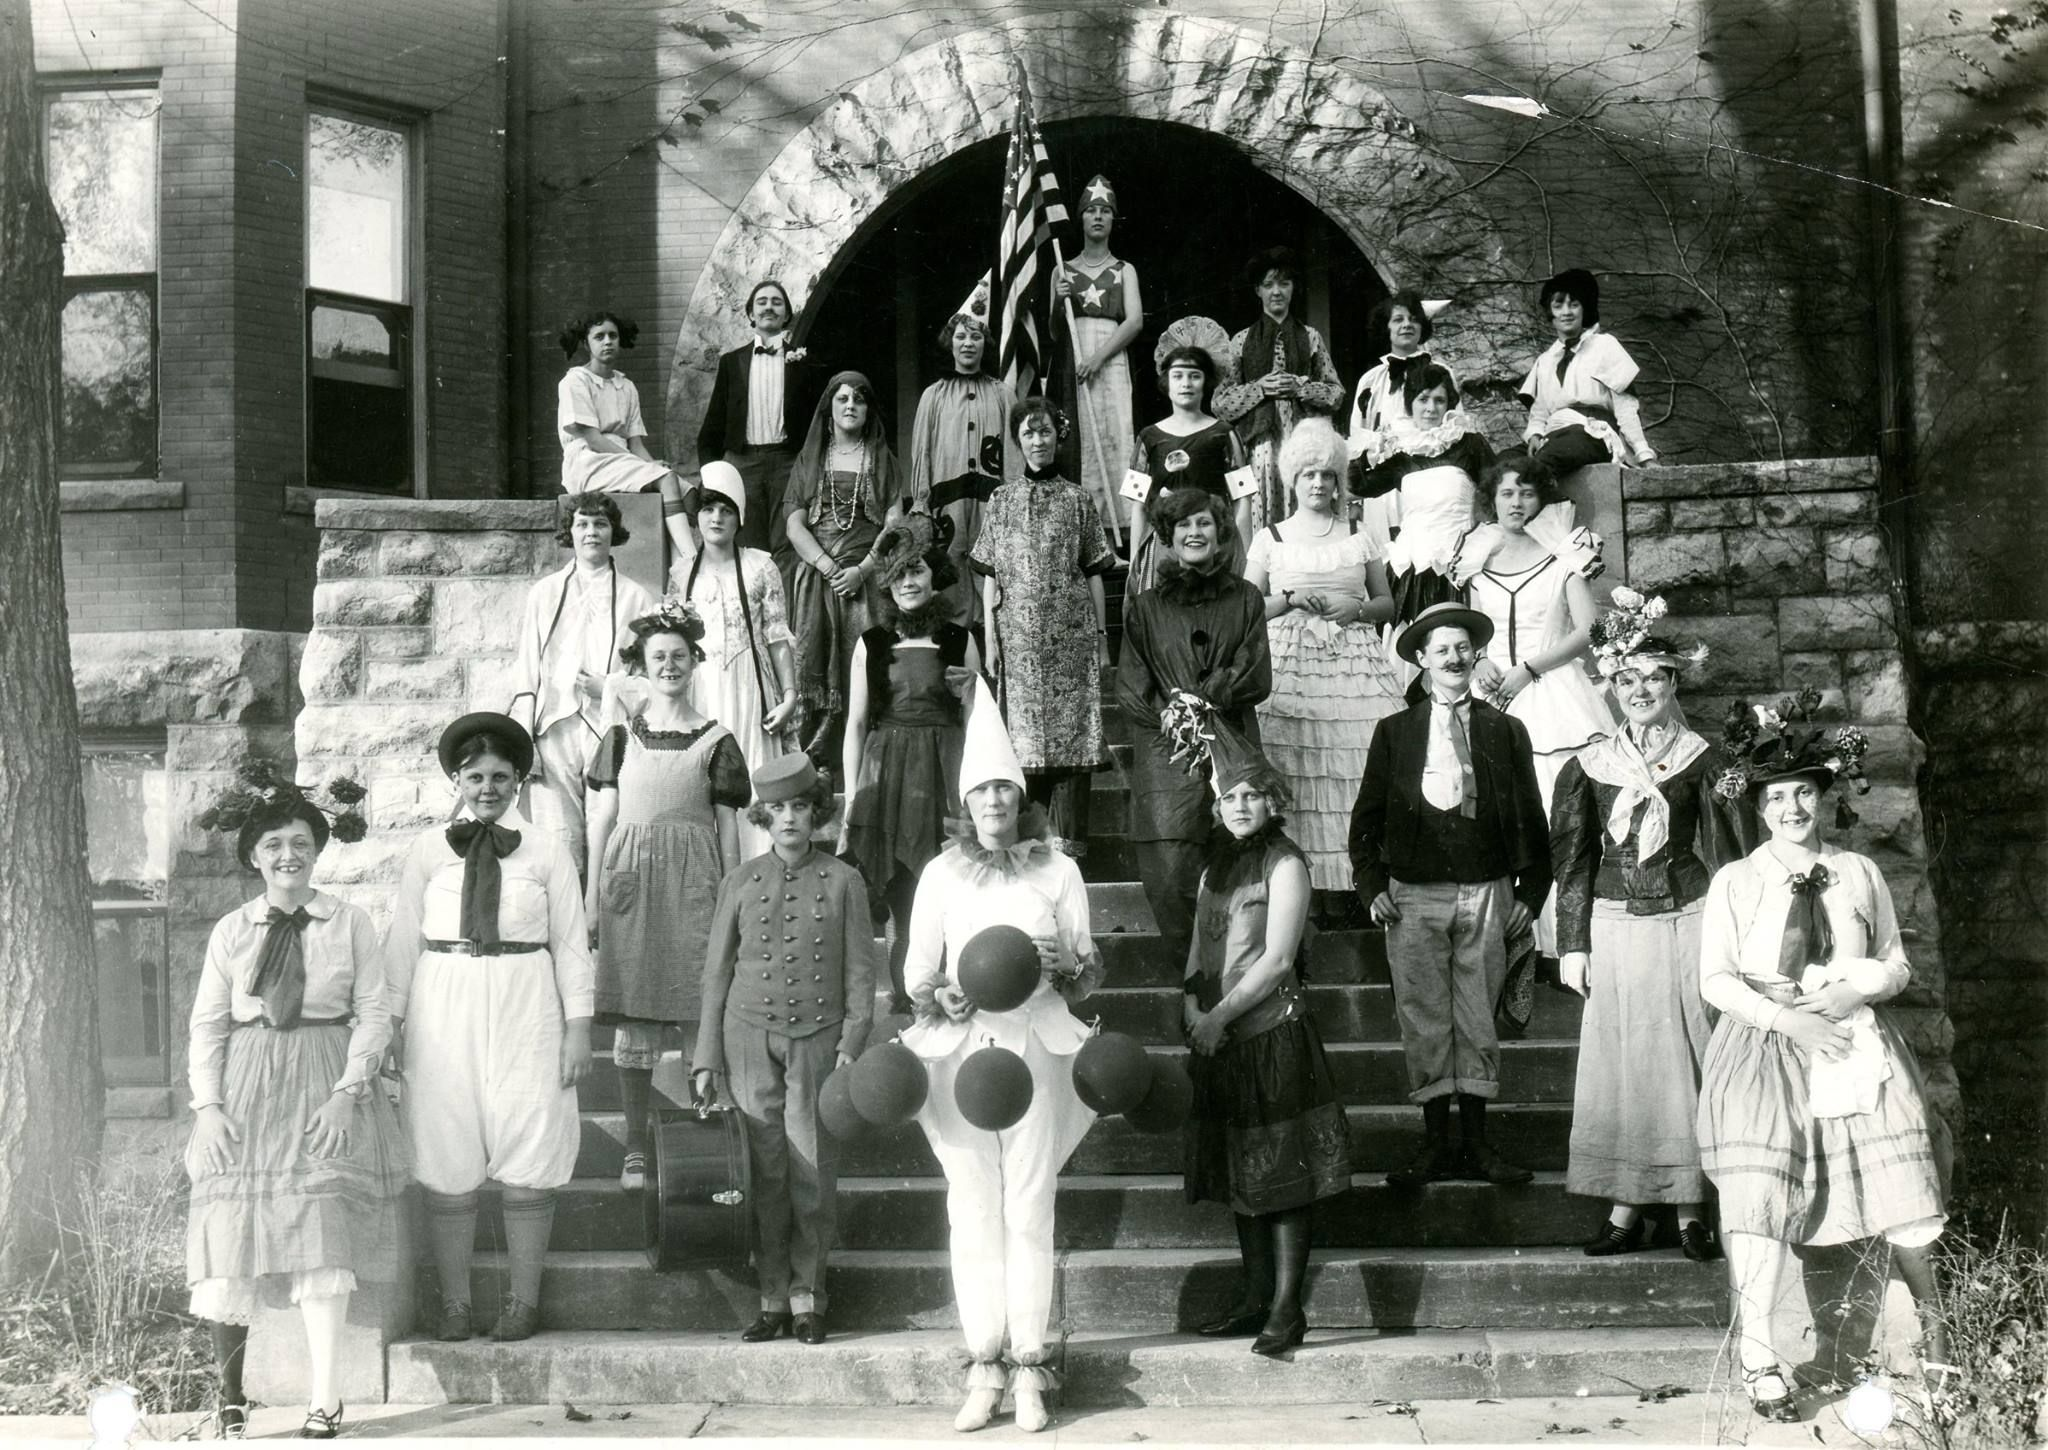 halloween at christian college in columbia, mo; now, columbia